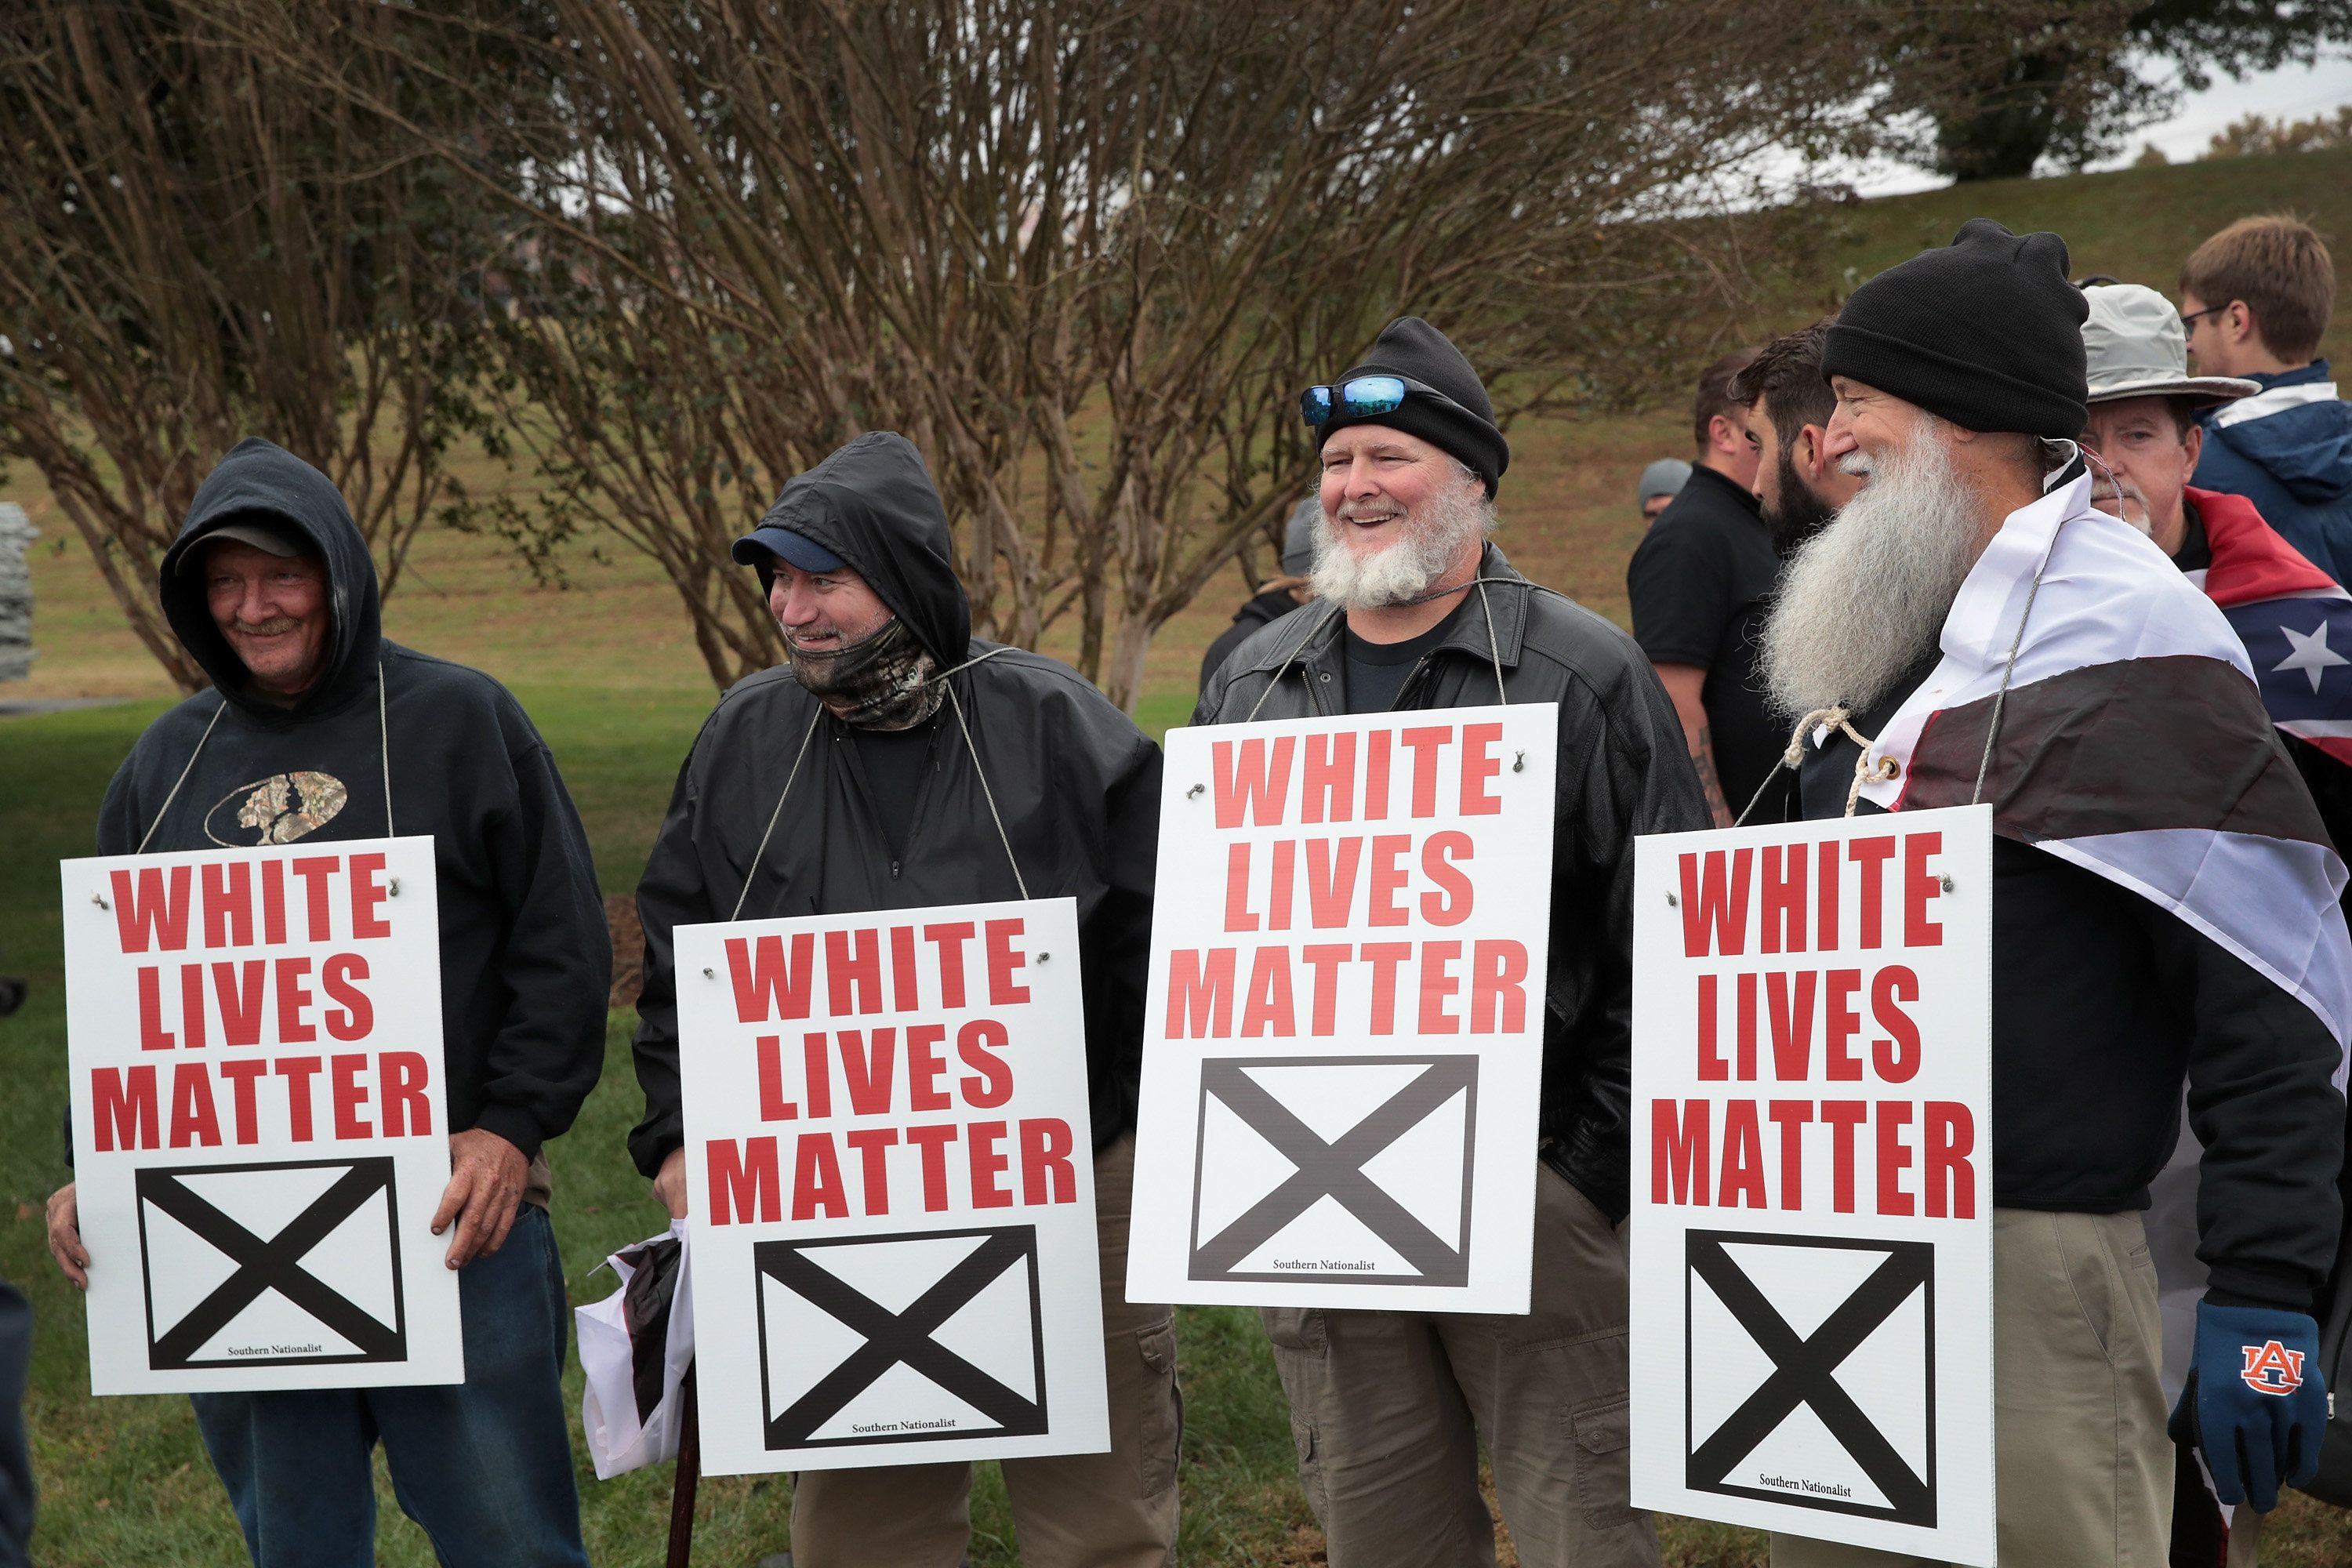 SHELBYVILLE, TN - OCTOBER 28:  White nationalist attend a rally on October 28, 2017 in Shelbyville, Tennessee. The event billed as a White Lives Matter rally is hosted by Nationalist Front, which is a coalition of several white supremacist organizations.  (Photo by Scott Olson/Getty Images)